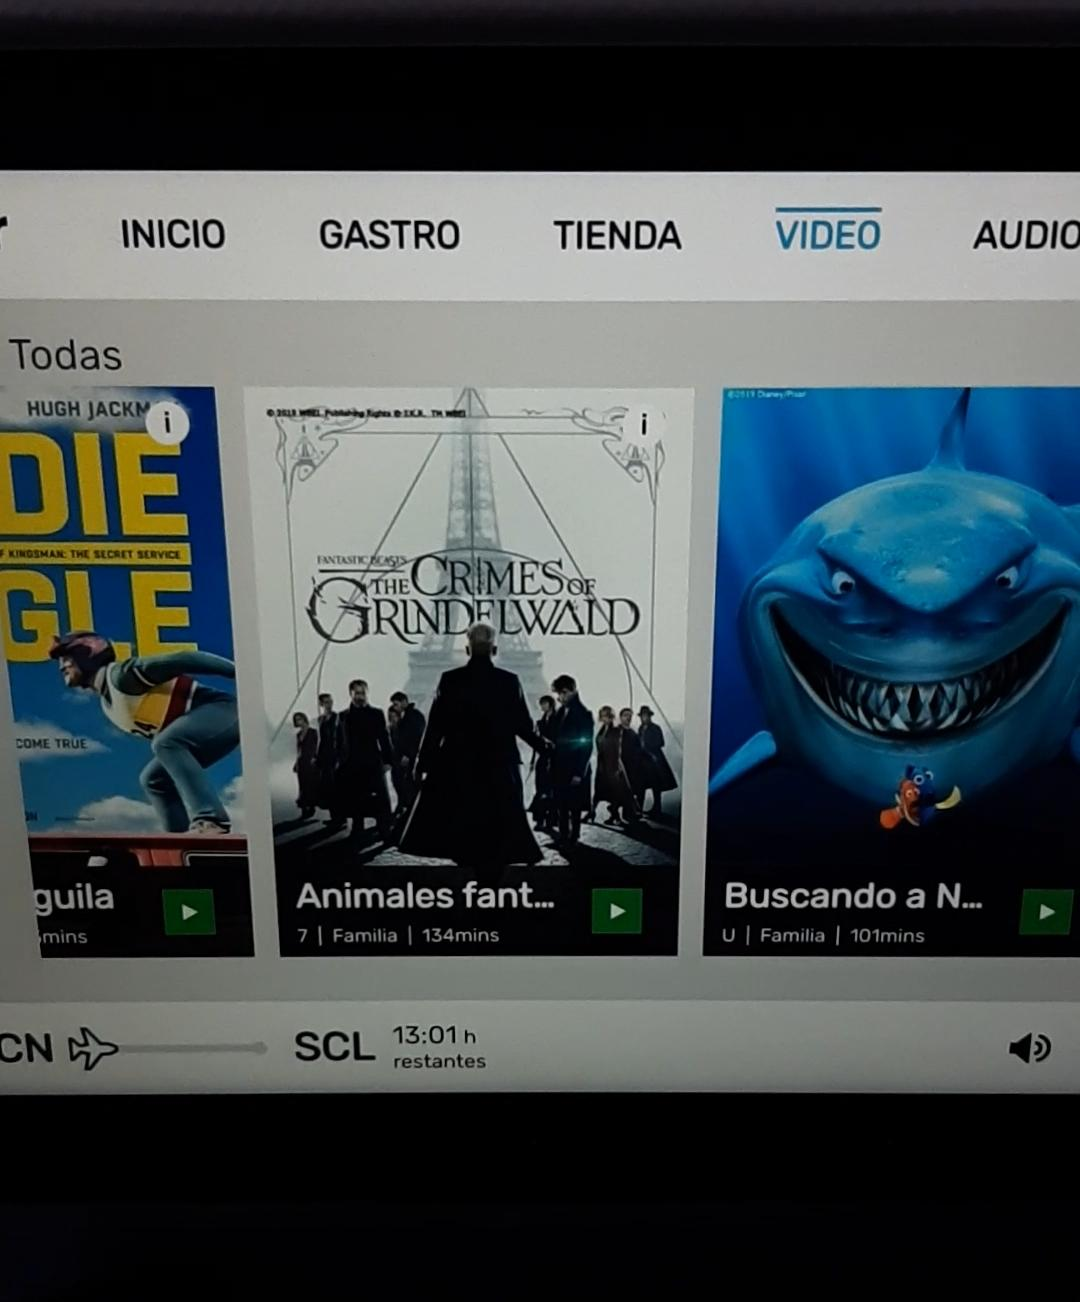 peliculas a bordo avion level